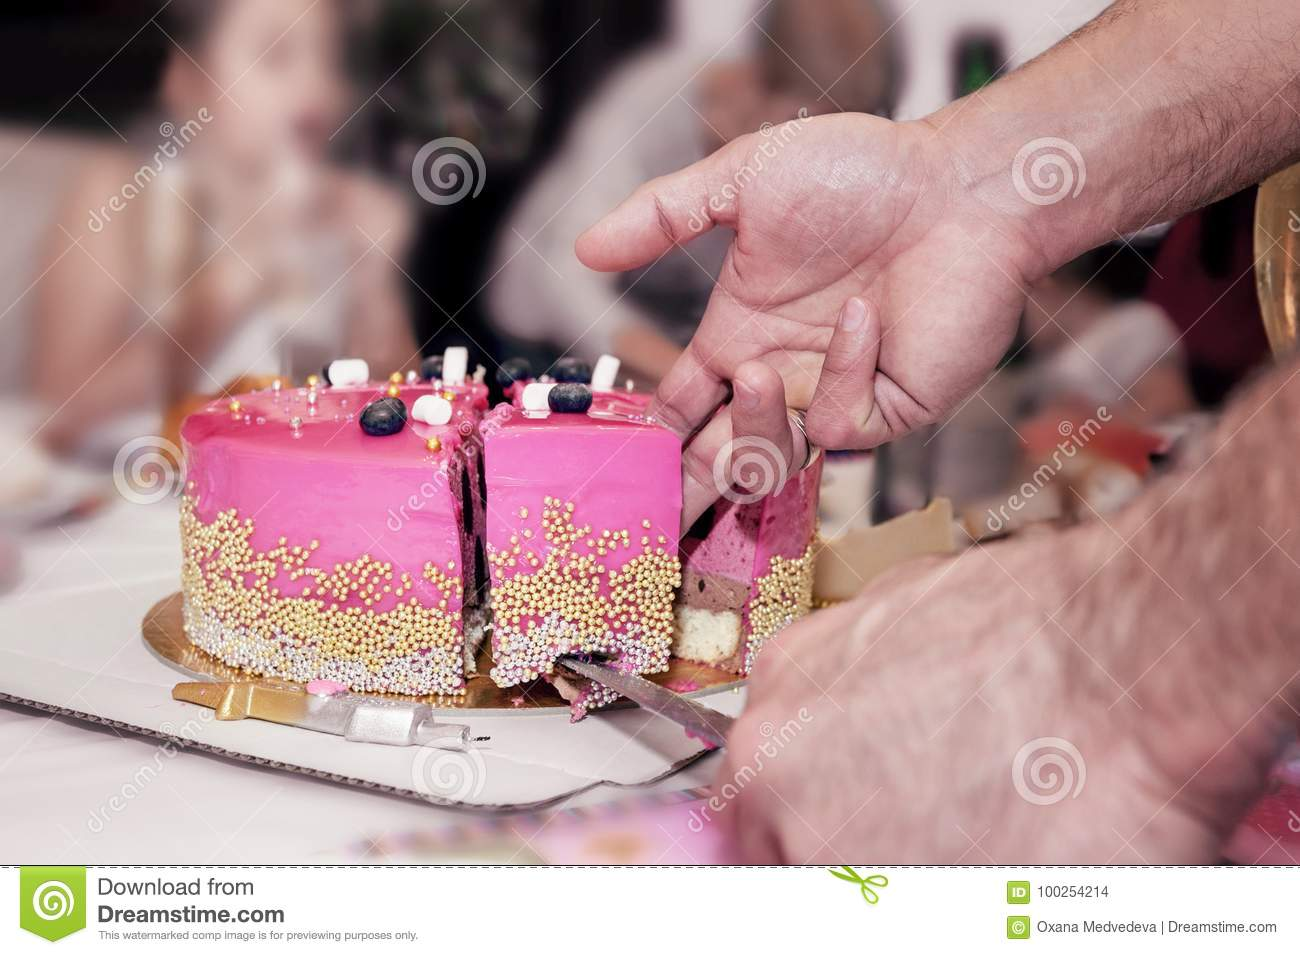 Birthday Cake Decorated With Pink Shiny High Polished Beads Cut Into Chunks Man Hands Closeup On Blurred Background